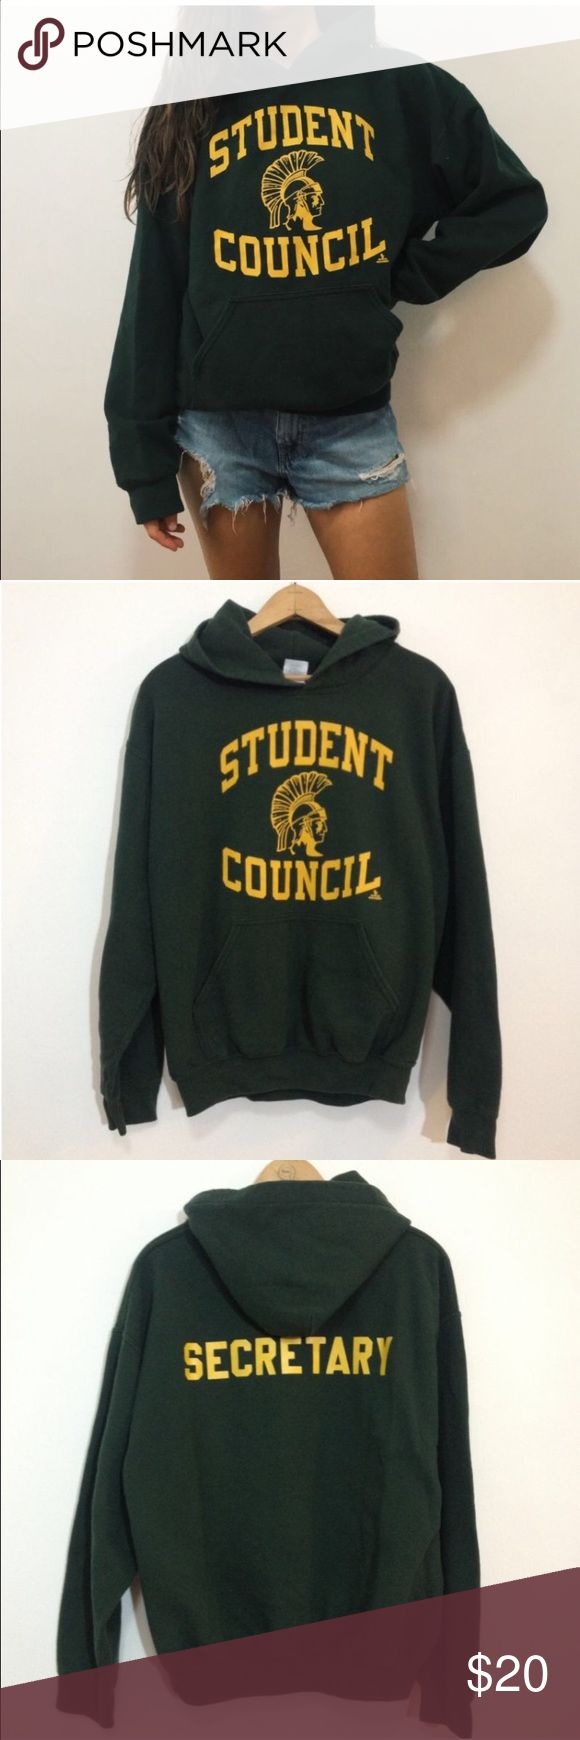 "Green High School Student  Hoodie Sweatshirt Green & Yellow High School Student Council Secretary Hoodie Sweatshirt  <<<<<<<<<<<<<<<<<<<<<<<<<<<<<<<<<<<<<<<<  *No Stains or holes, missing hoodie drawcord  Size Medium 25"" long 23"" across chest armpit to armpit  Part of the GYM CLASS DROPOUTS COLLECTION Gildan Tops Sweatshirts & Hoodies"